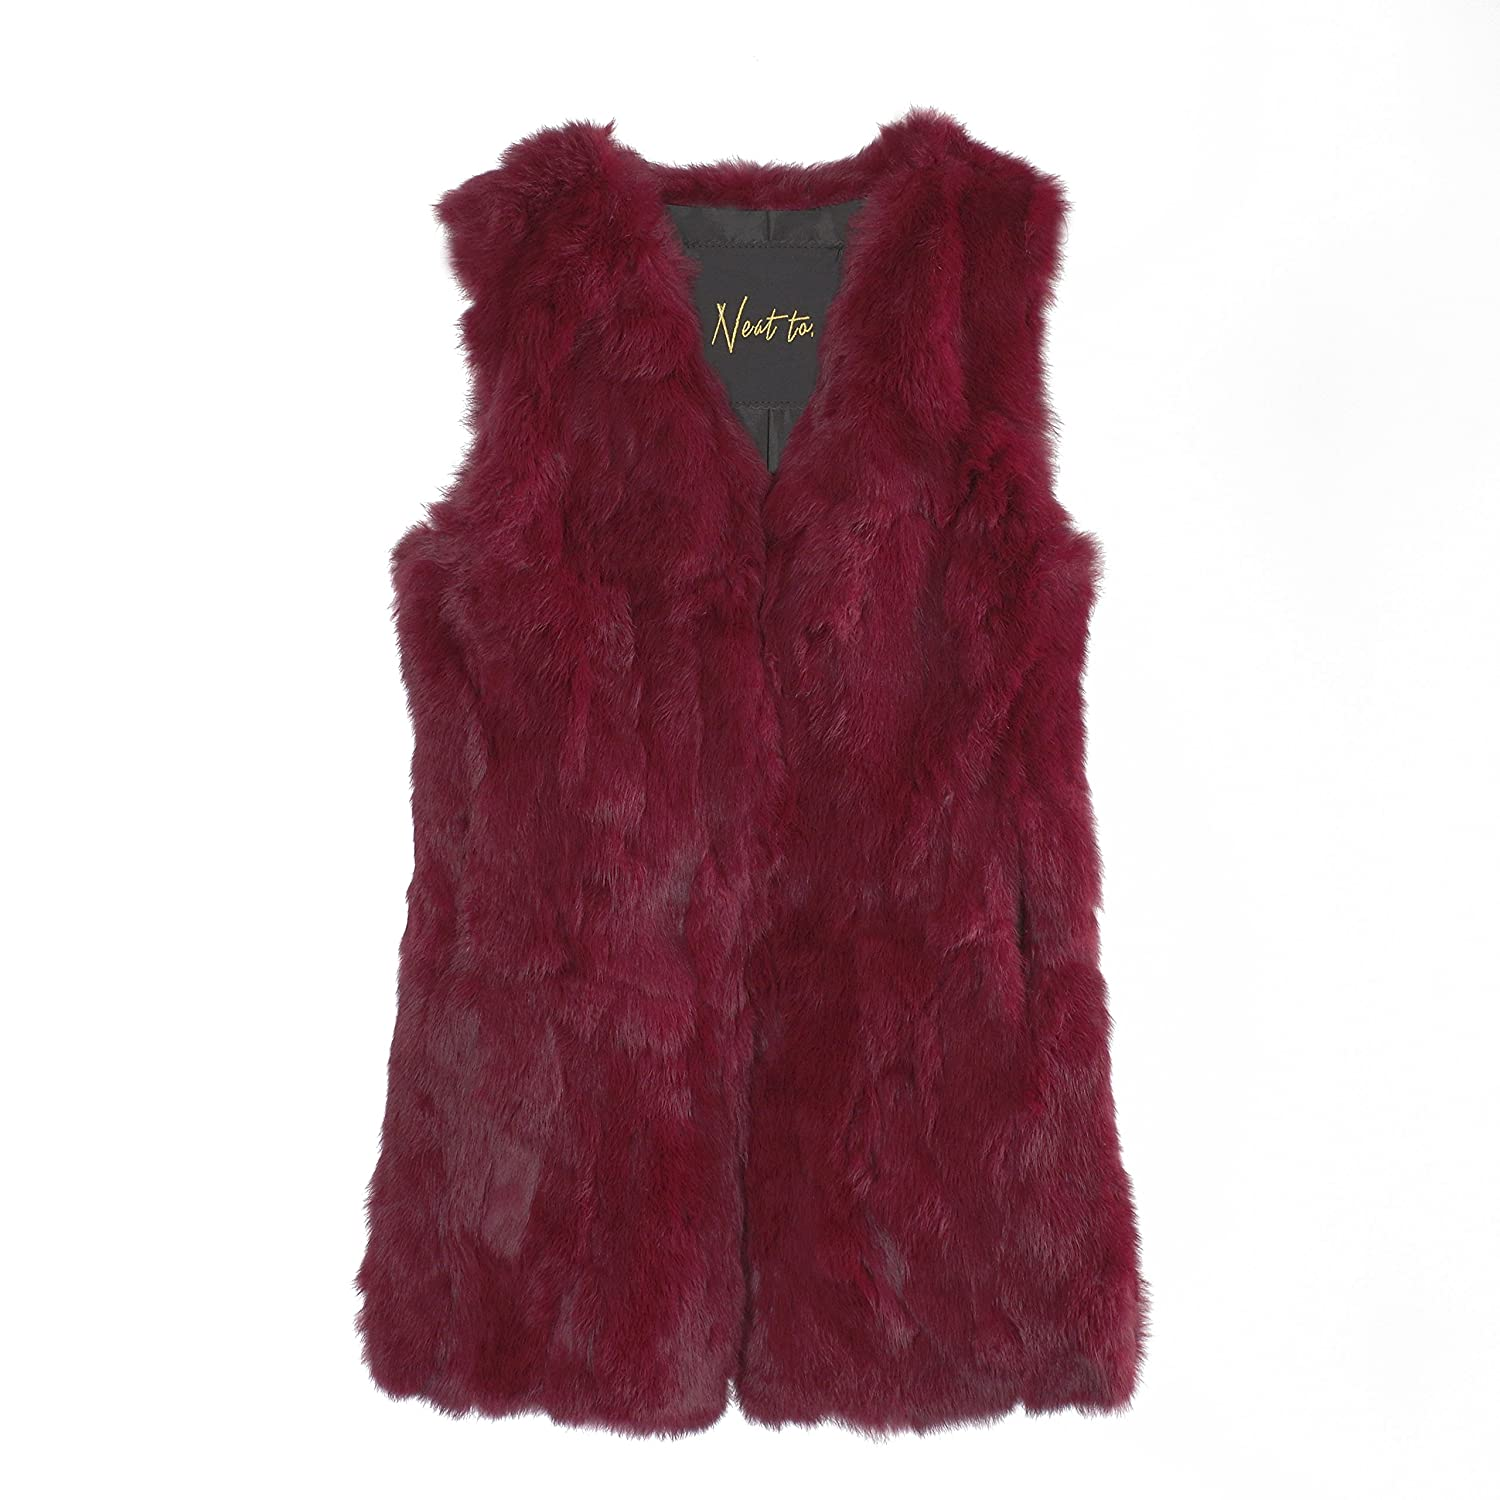 Elegant real fur vest NATAL for ladies, out of rabbit fur from Neat to. available in Black, Taupe, Beige, Darkred (Darkred, S/M)